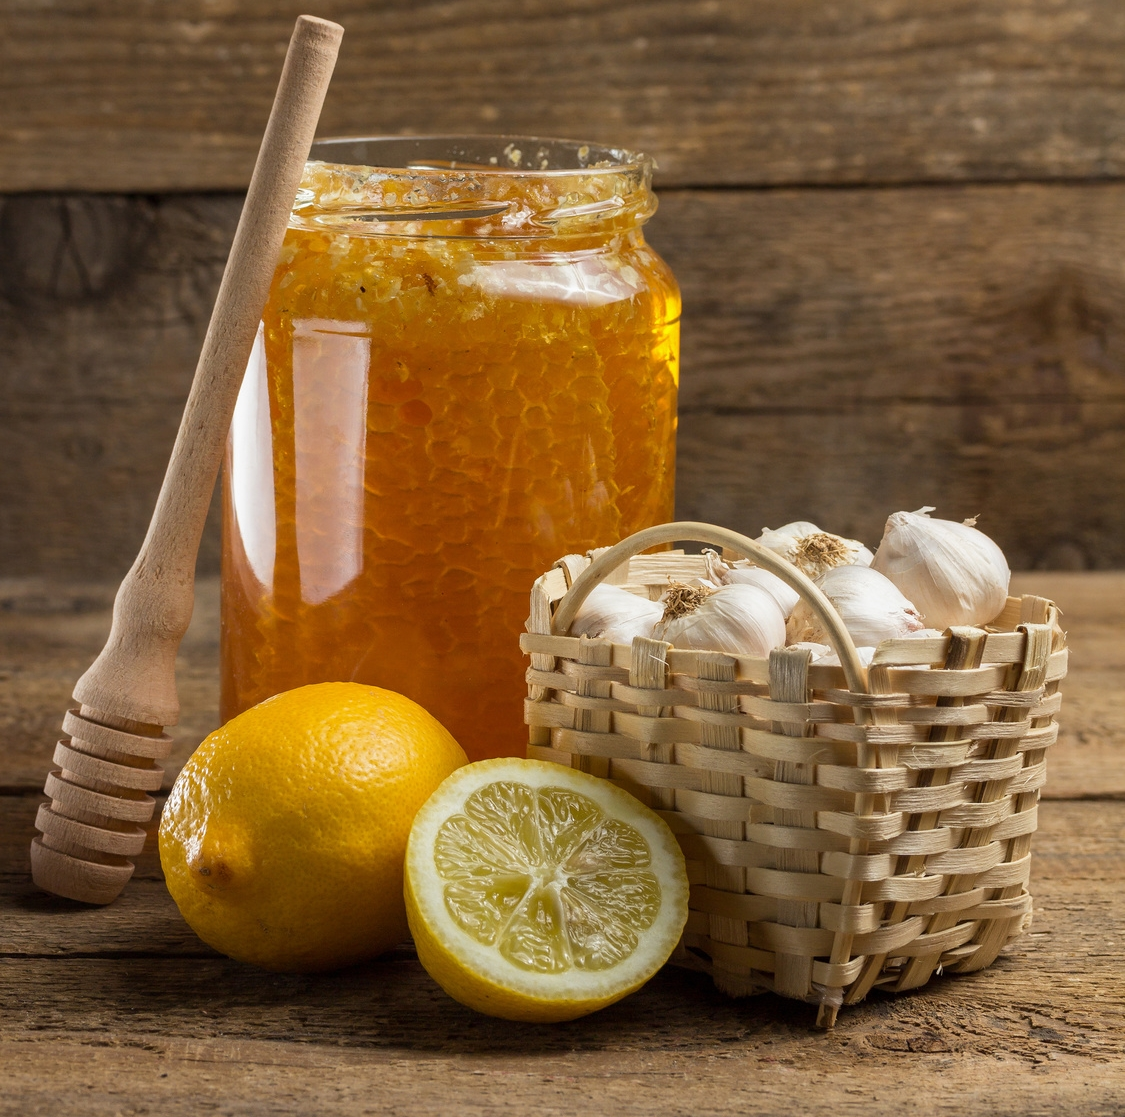 Lemon, garlic and jar of honey